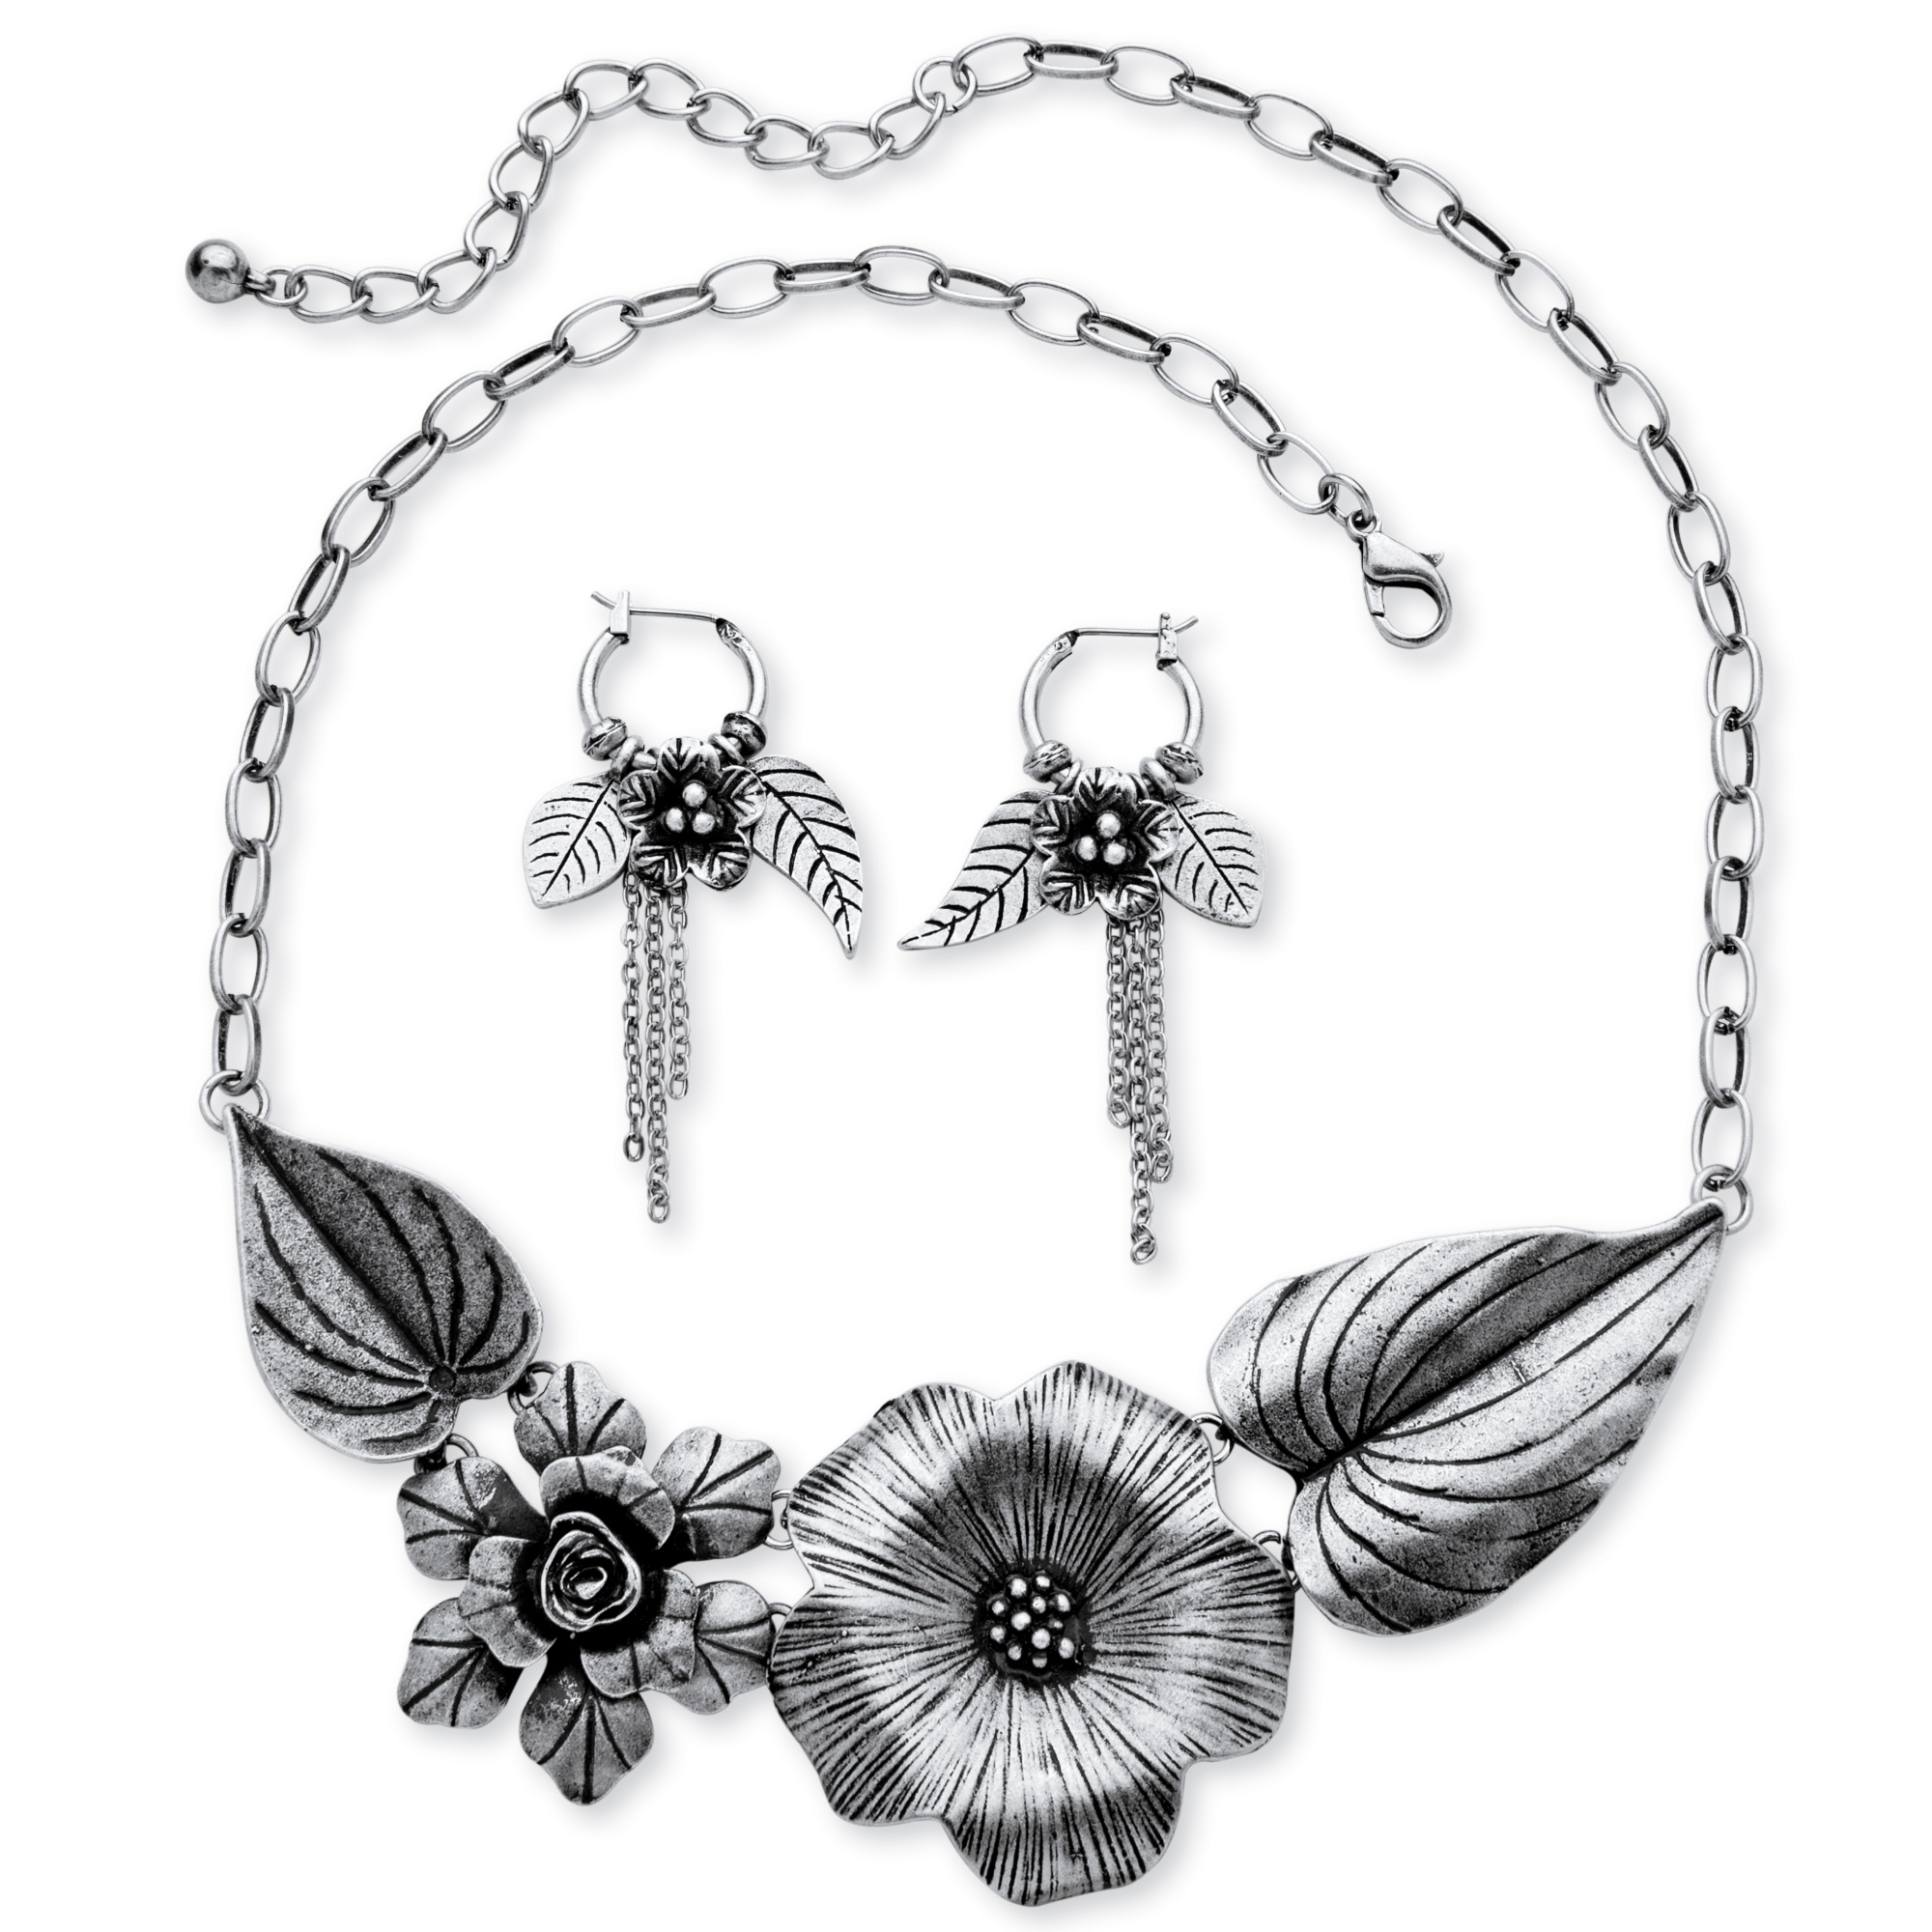 Silvertone Antique-Finish Flower and Leaf Bib Necklace and